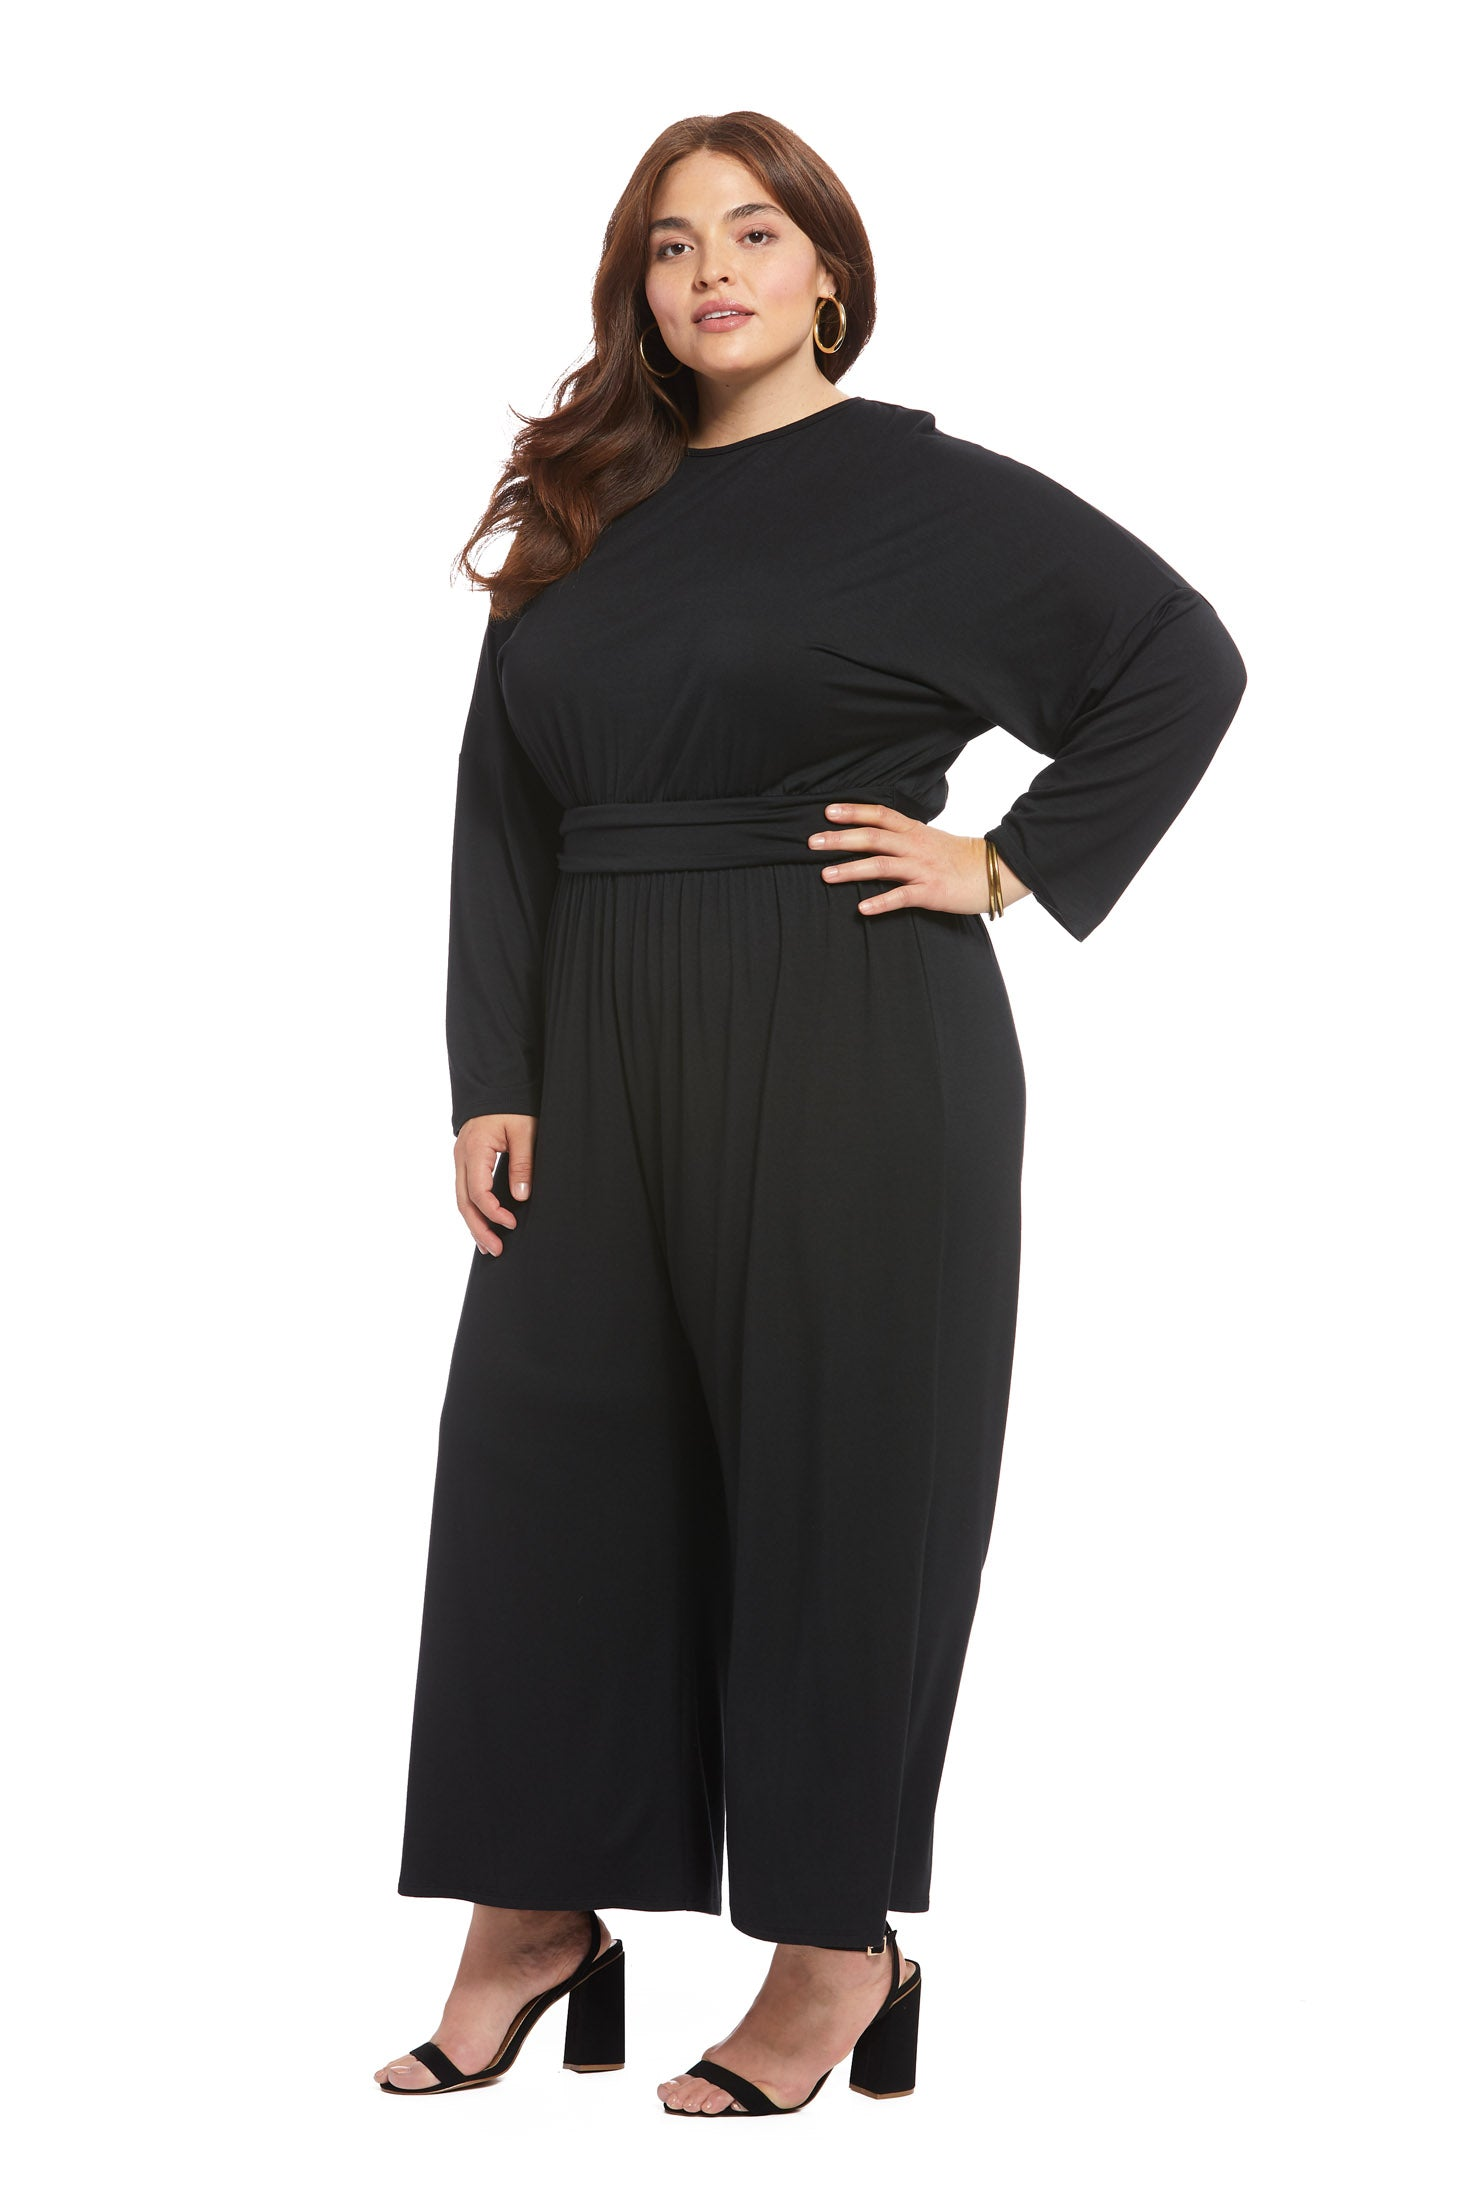 Asta Jumpsuit - Black, Plus Size